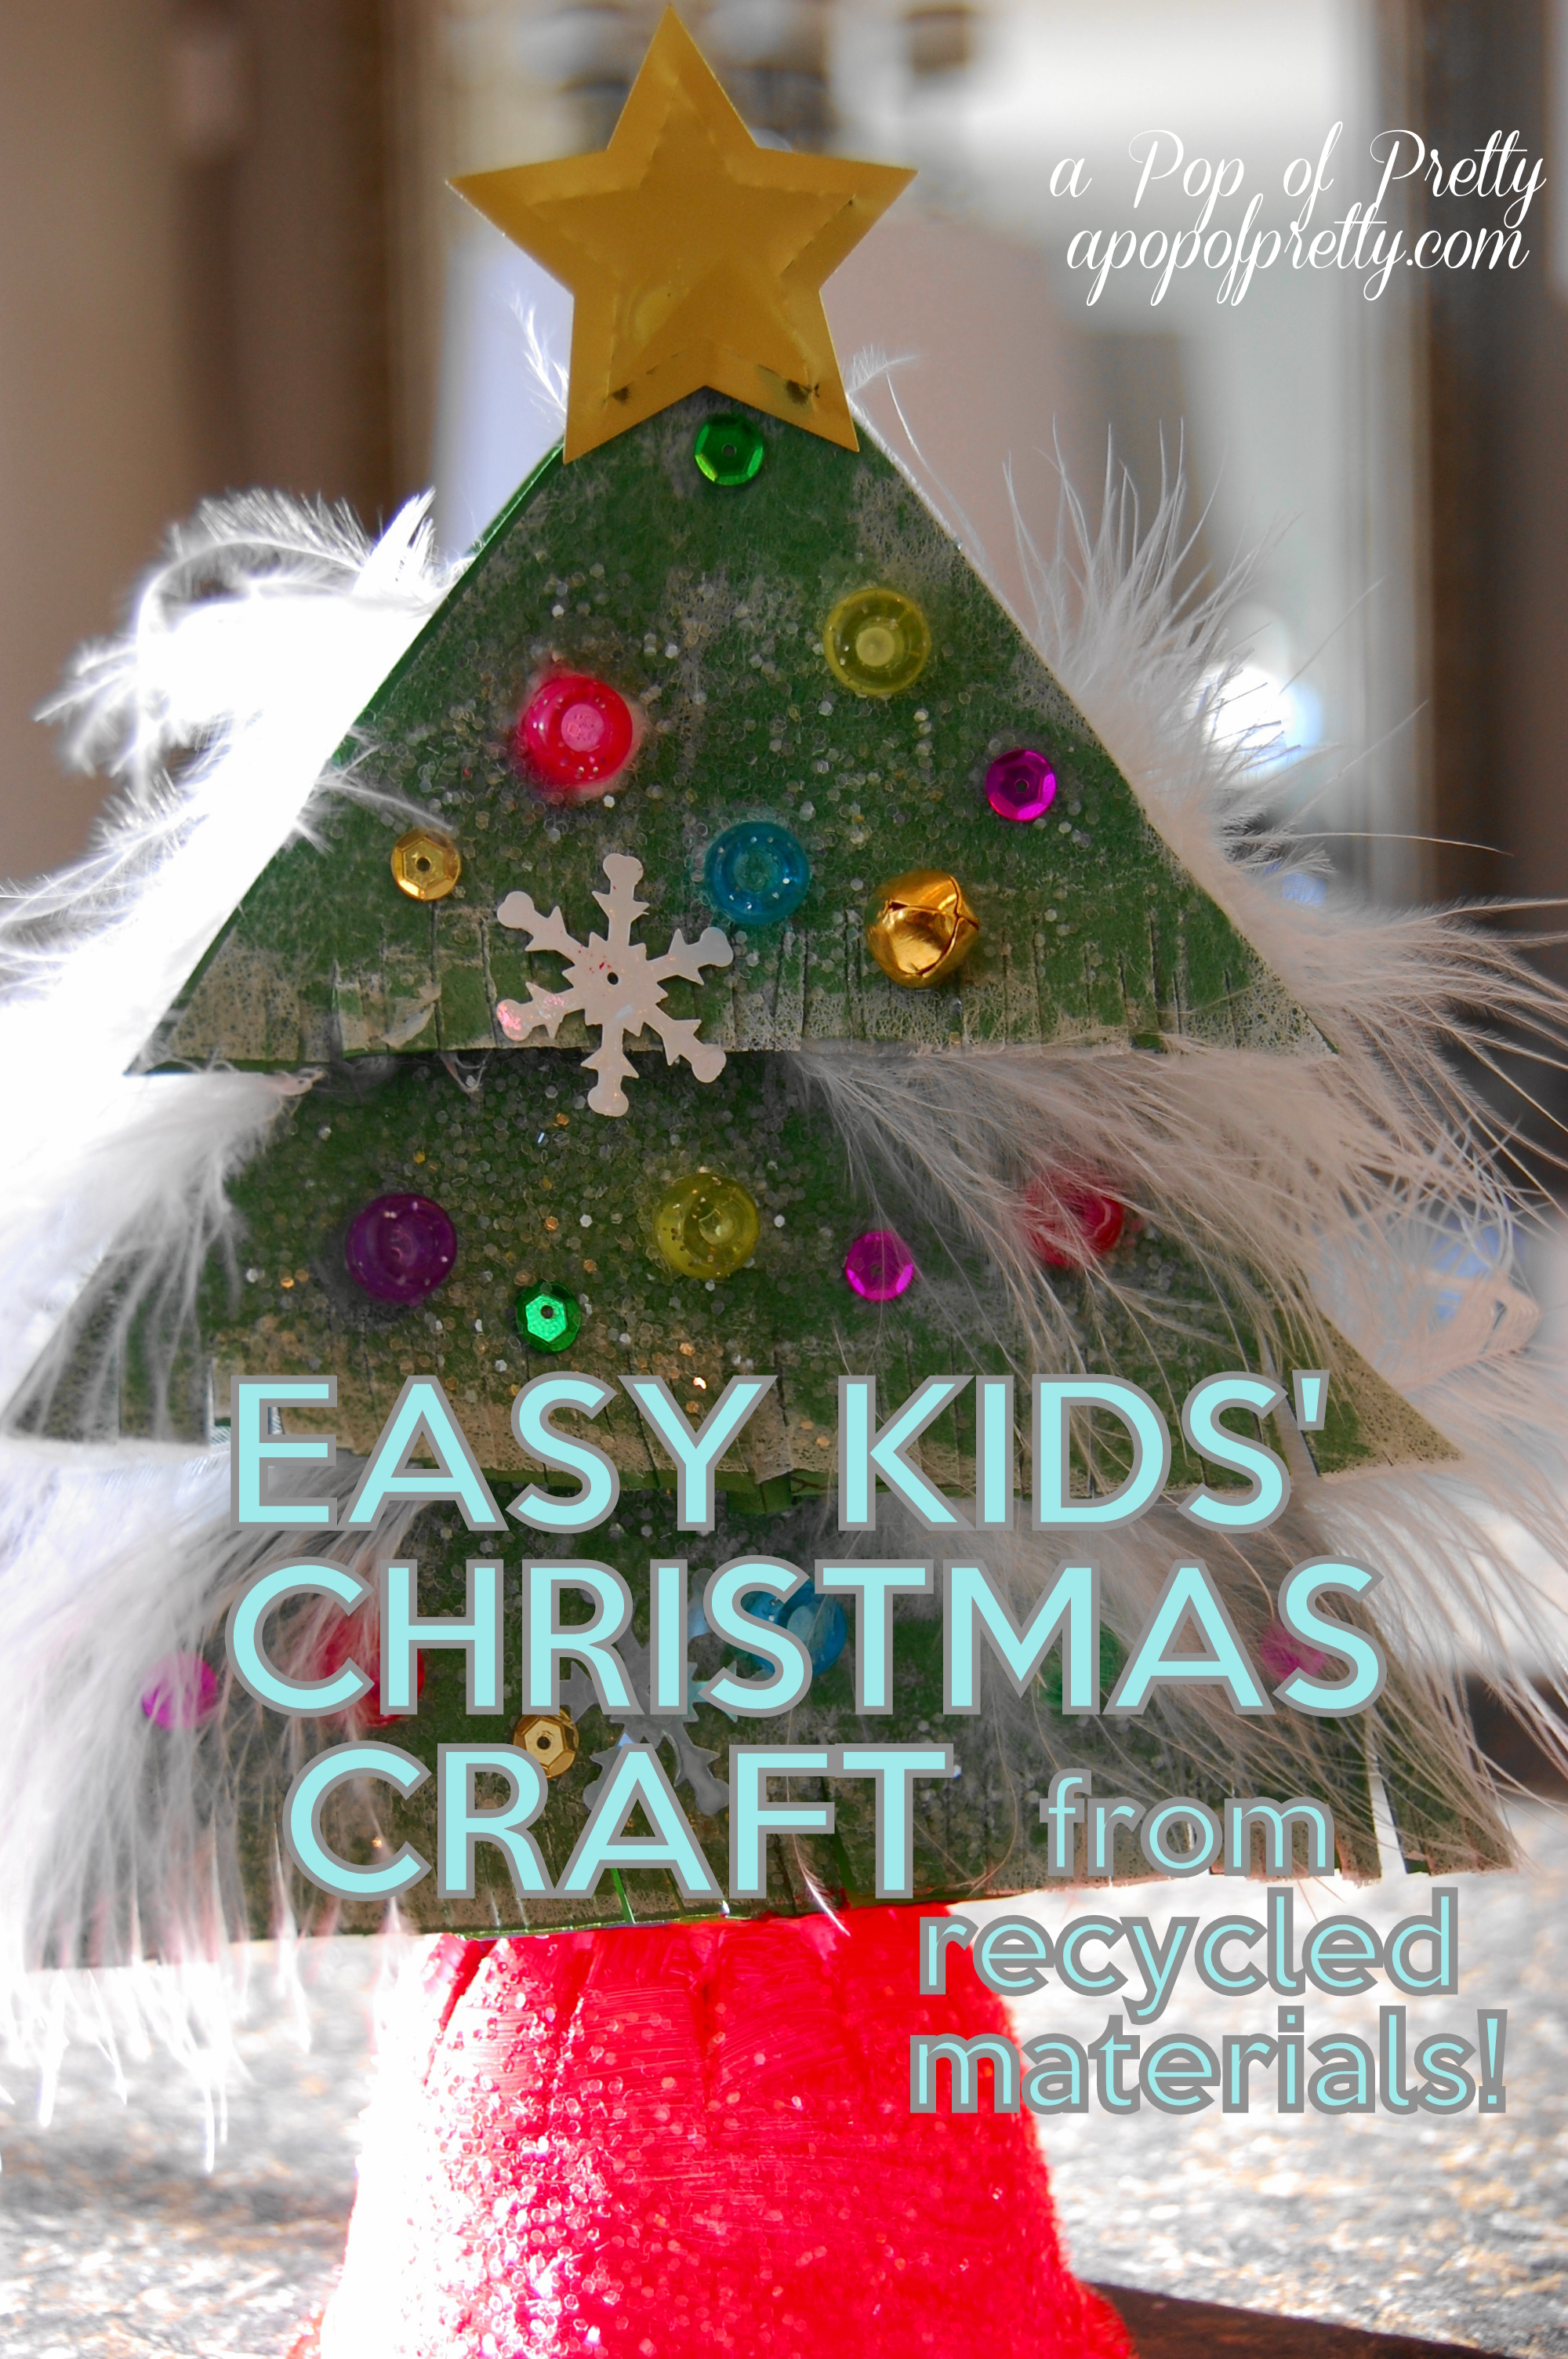 Recycled crafts ideas christmas recycled christmas craft ideas